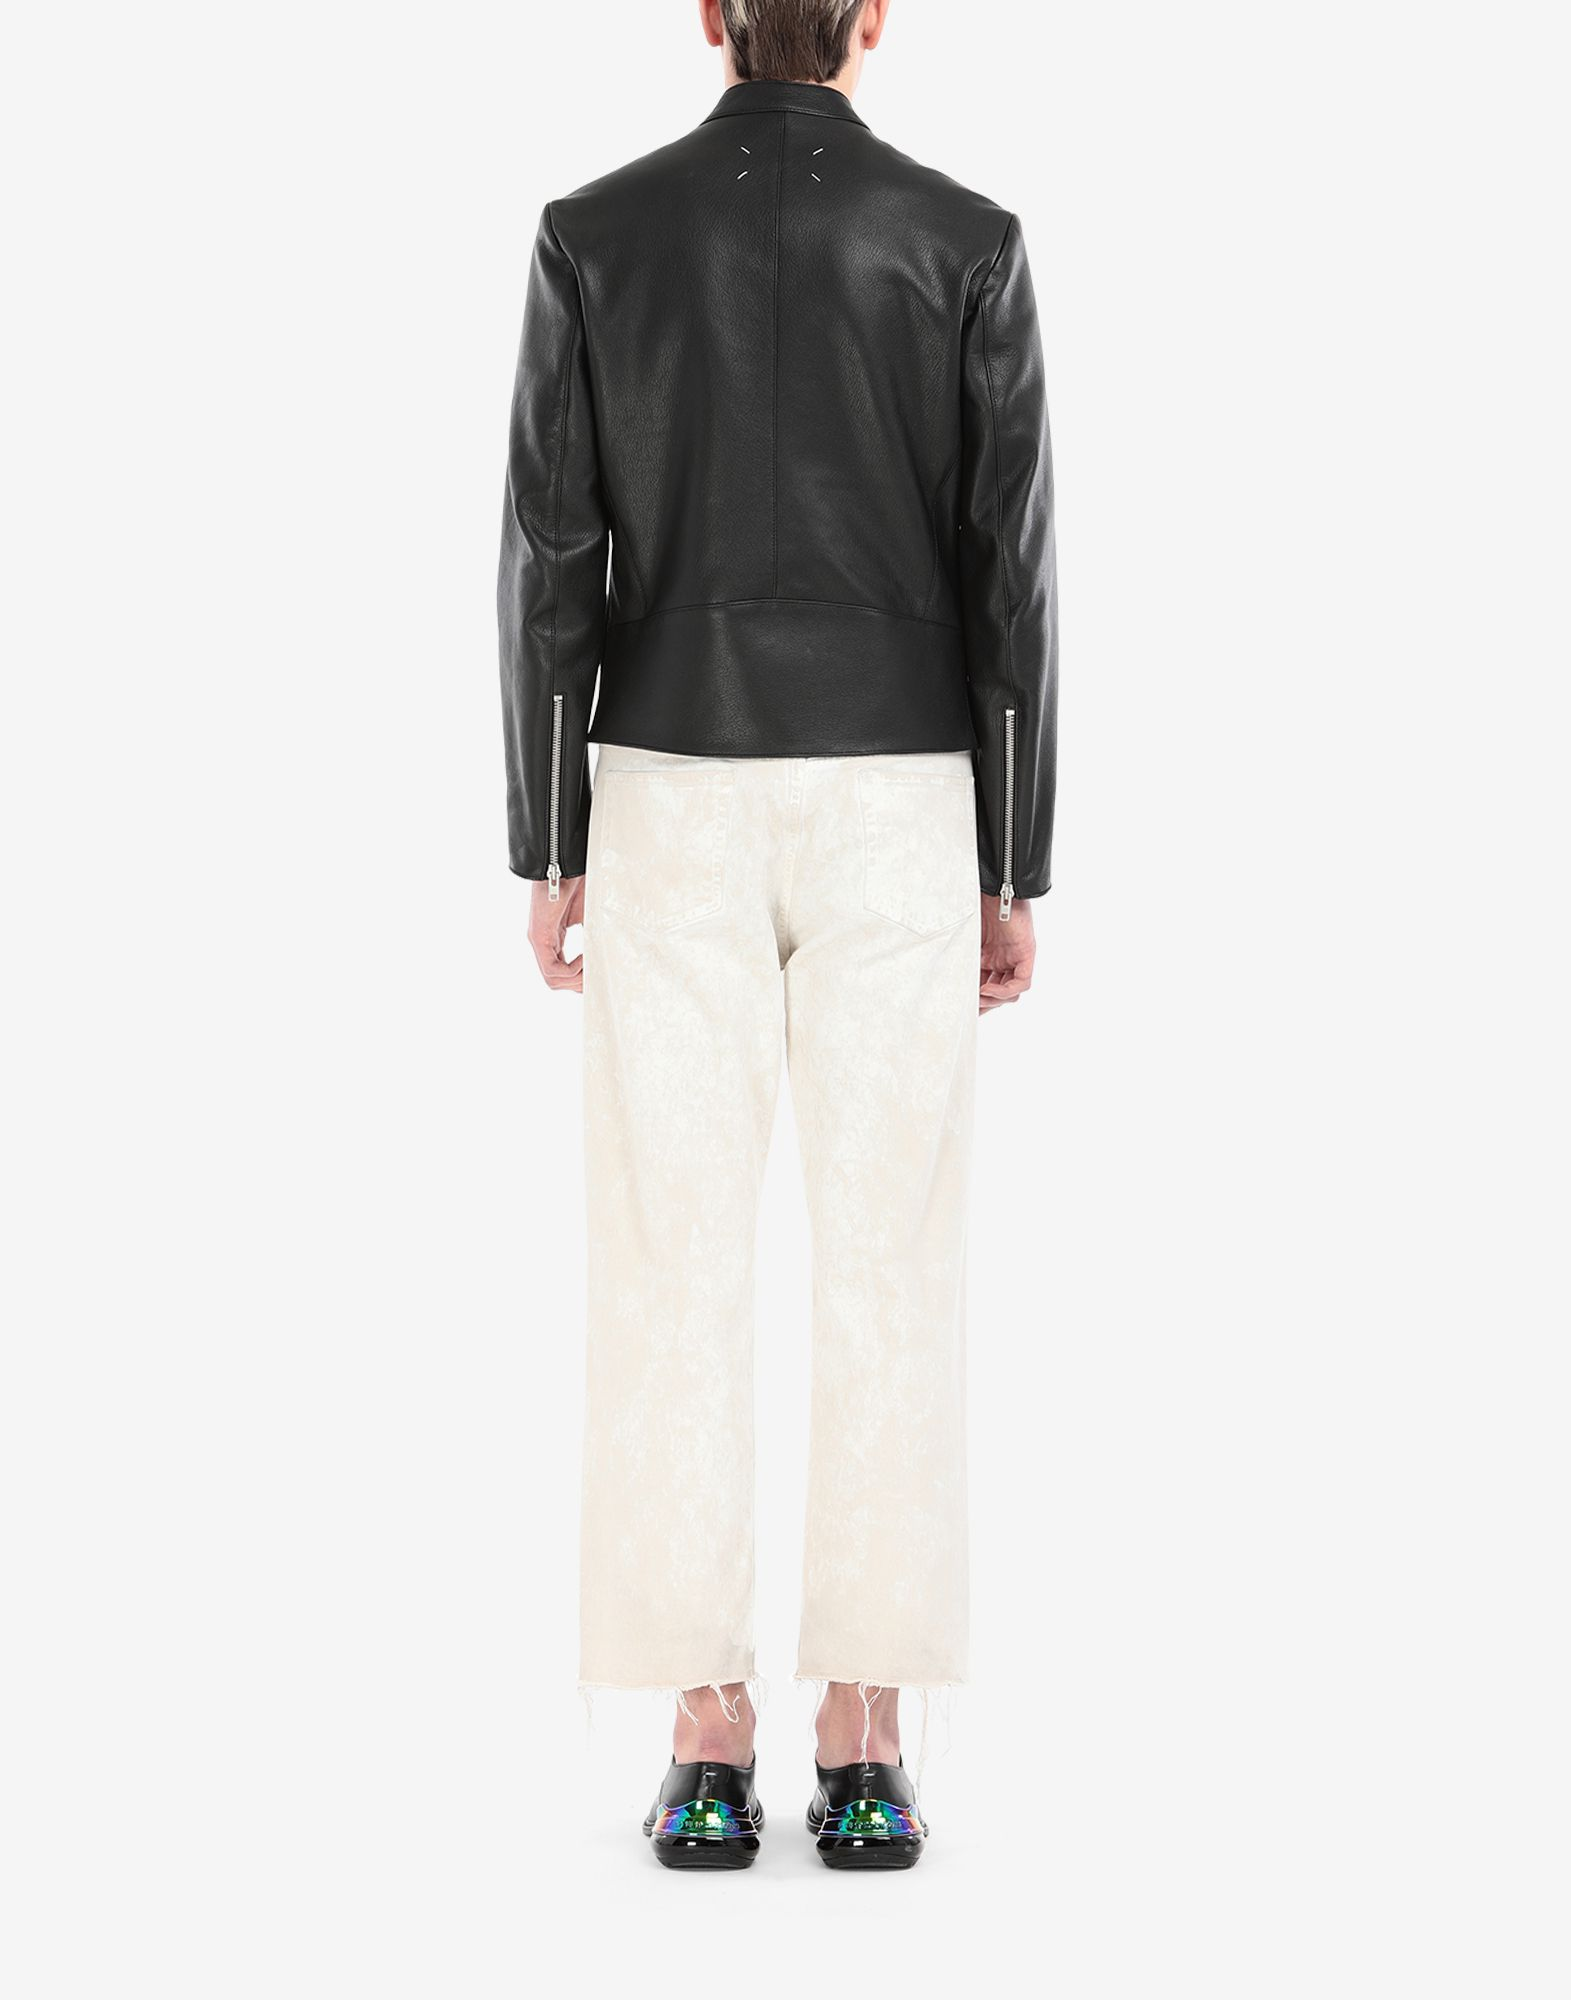 MAISON MARGIELA Leather sports jacket Leather Jacket Man e